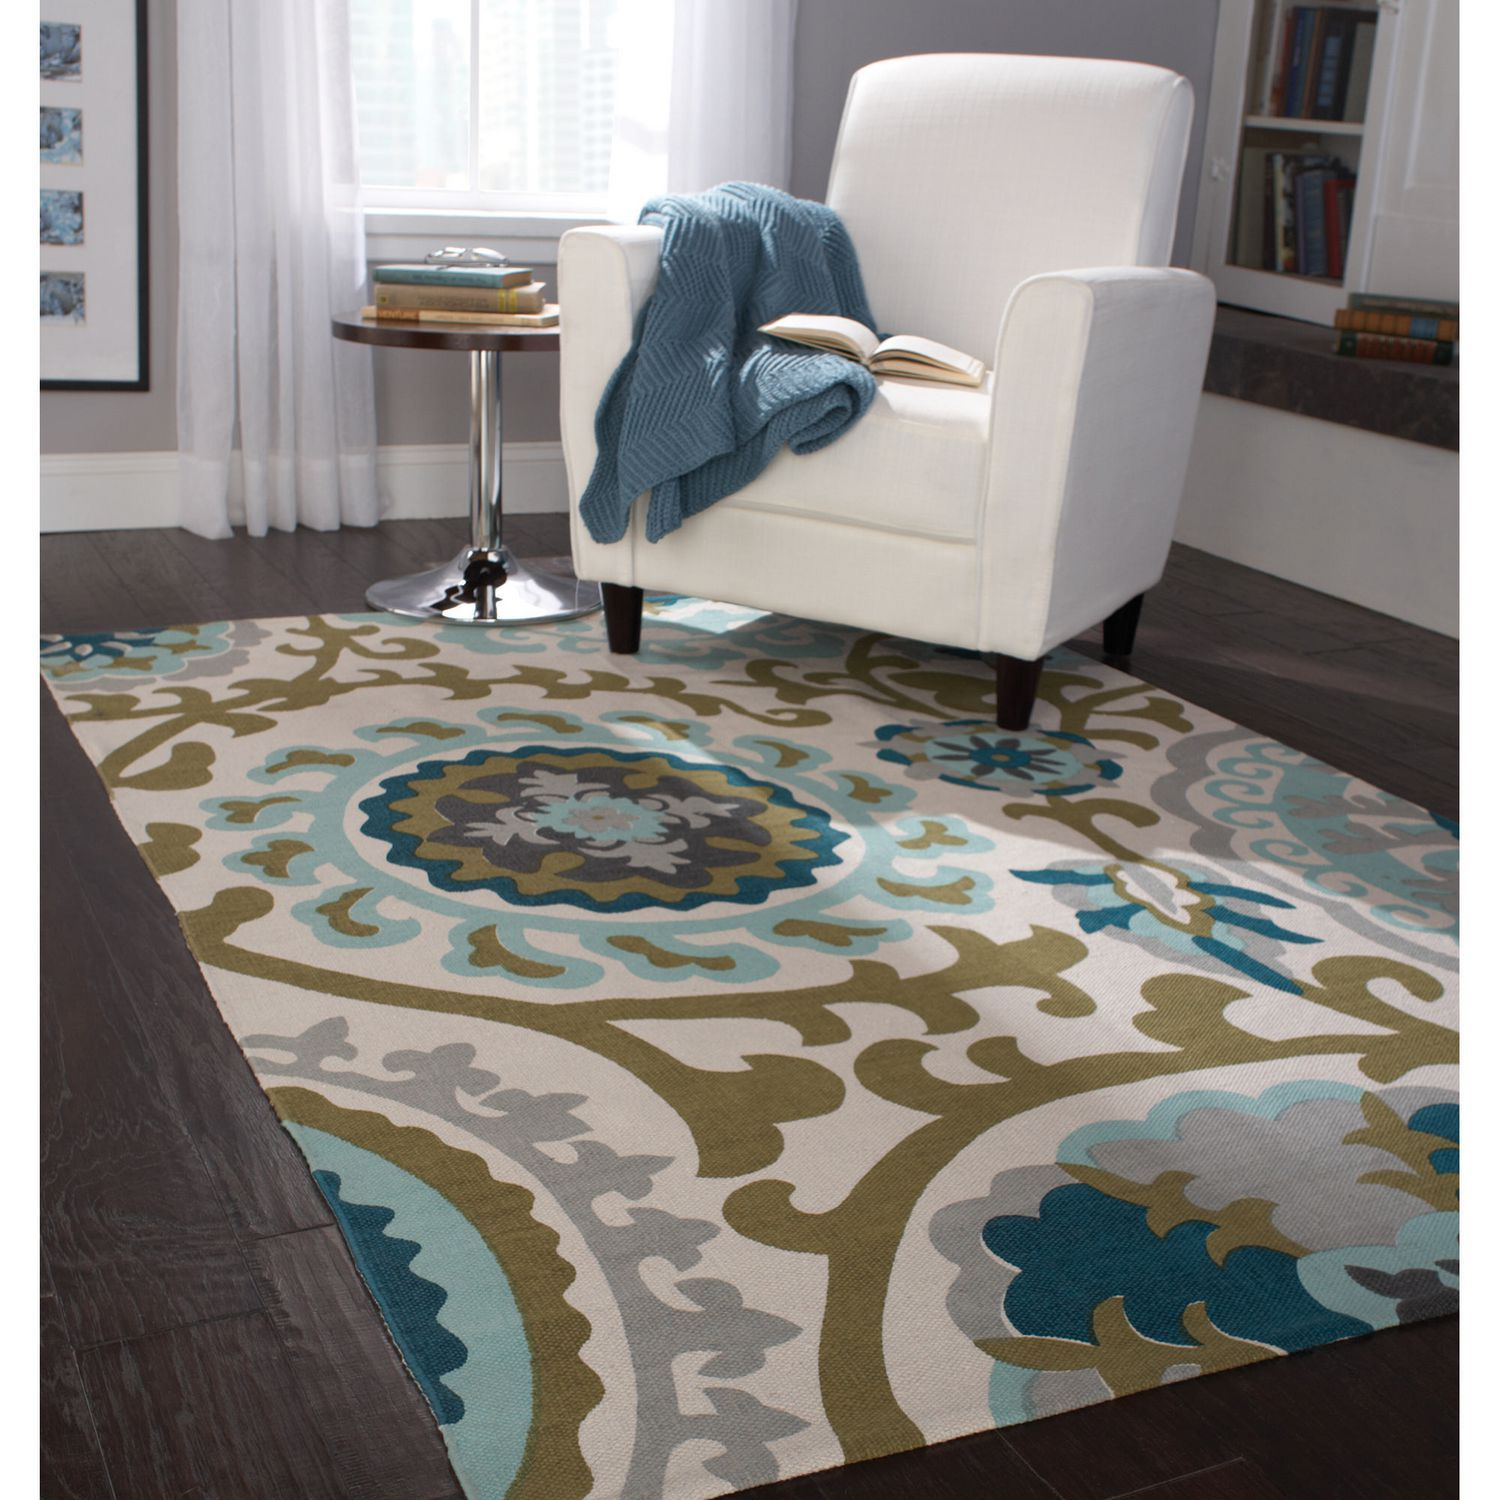 Home Trends Area Rug 4 Ft 11 In X 6 9